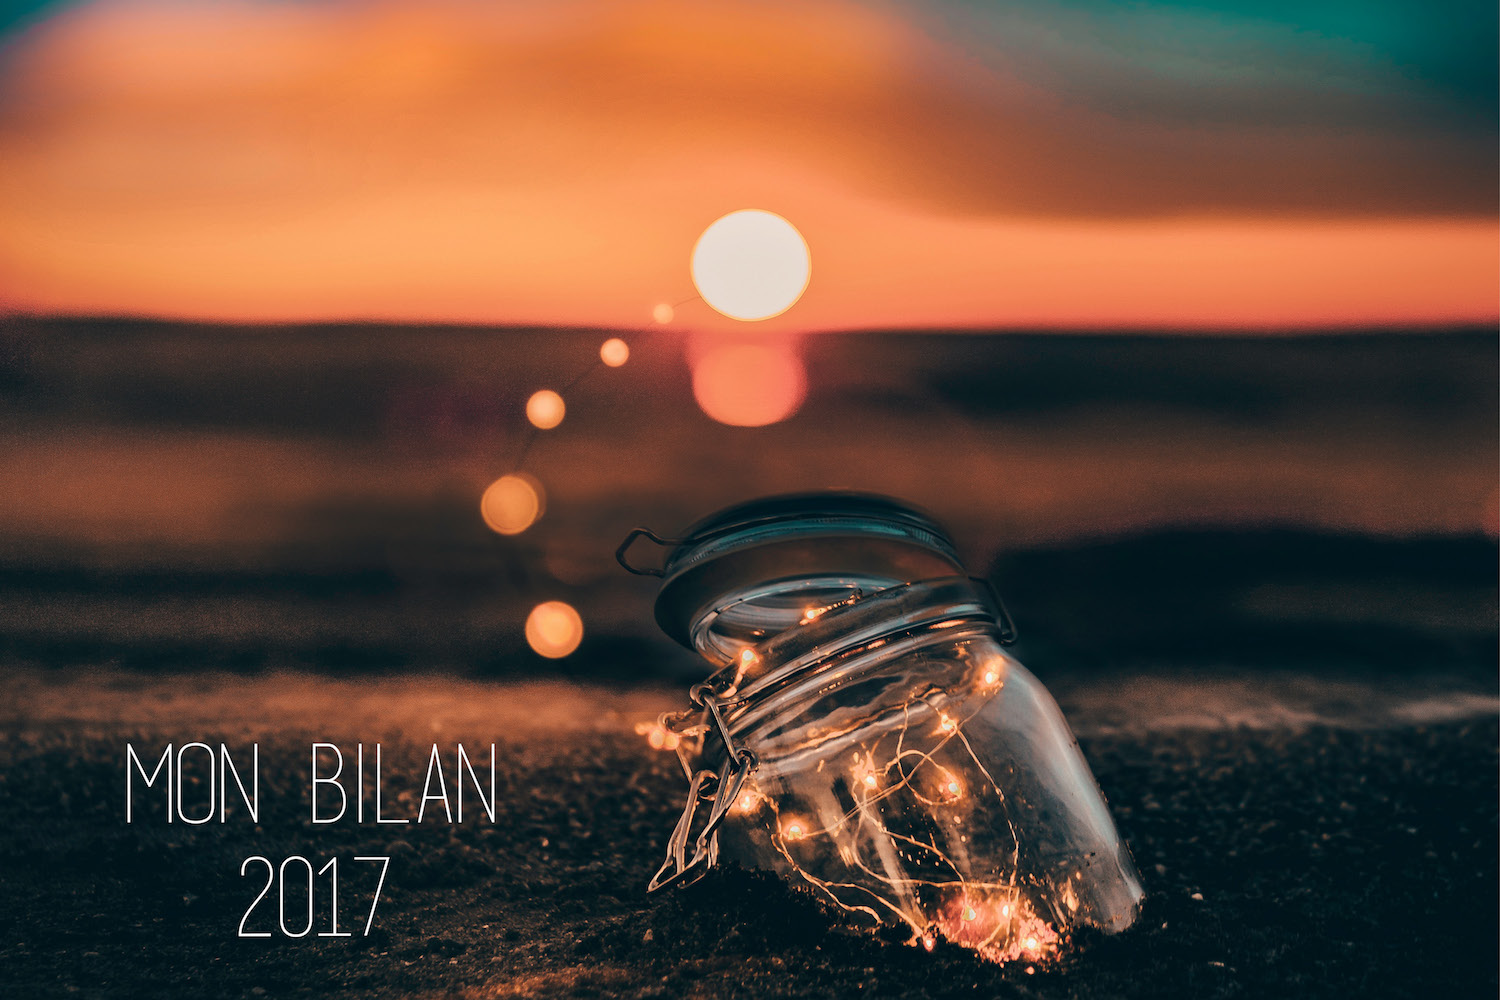 Bilan 2017 The bright side of the year